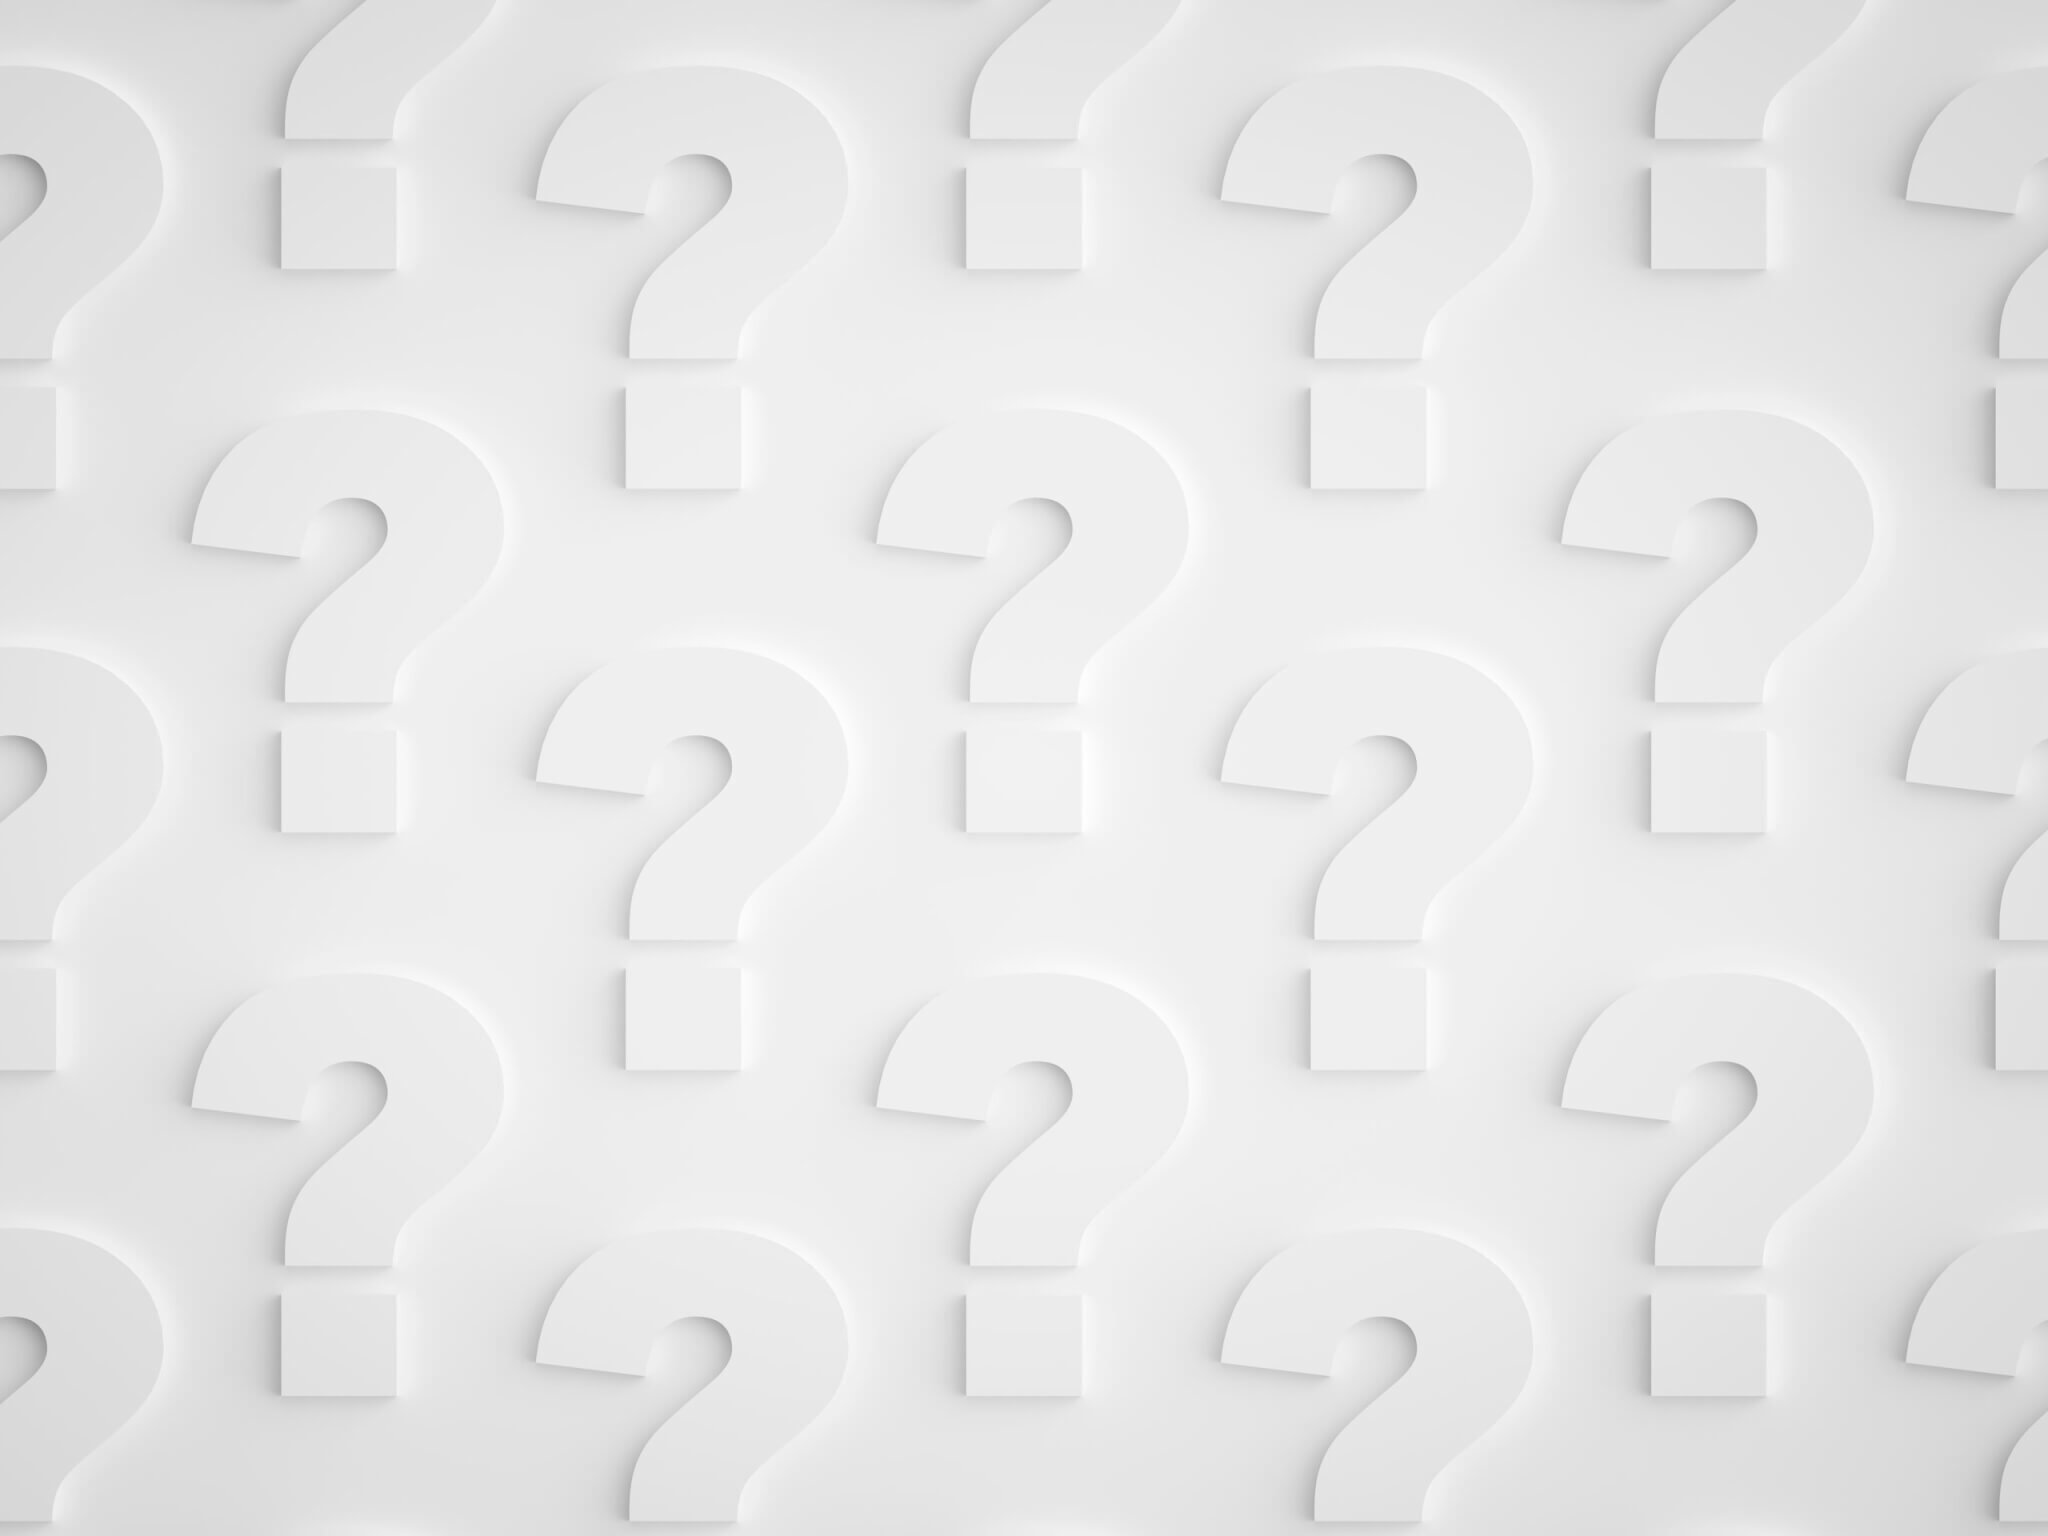 why grober background of question marks